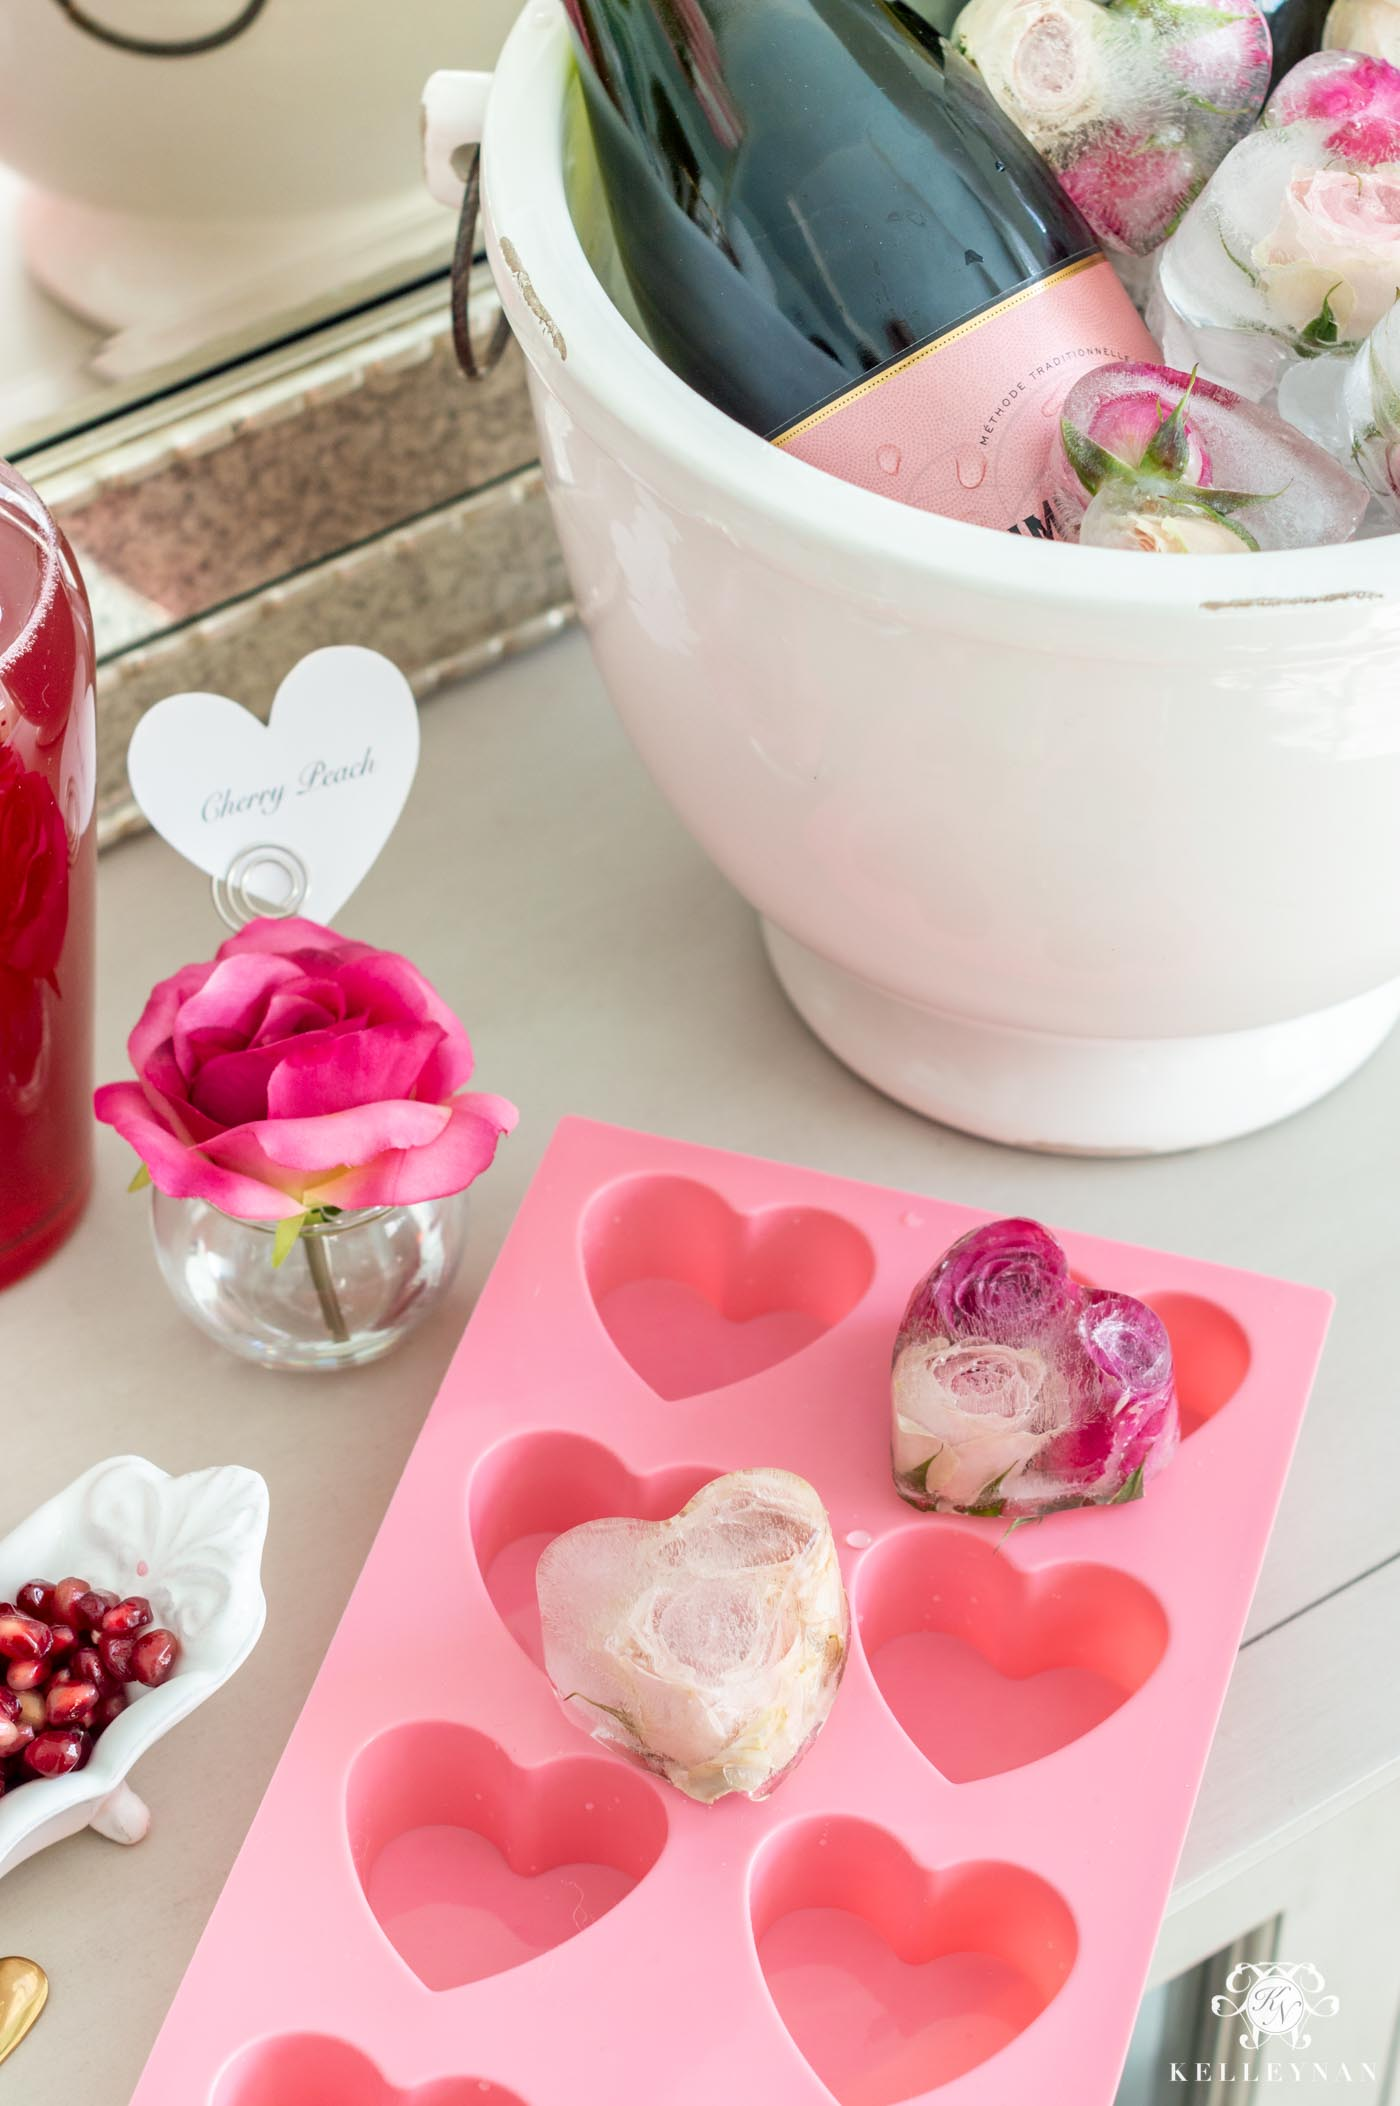 Heart Shaped Ice Cube Tray for Party and Shower Beverage Stations